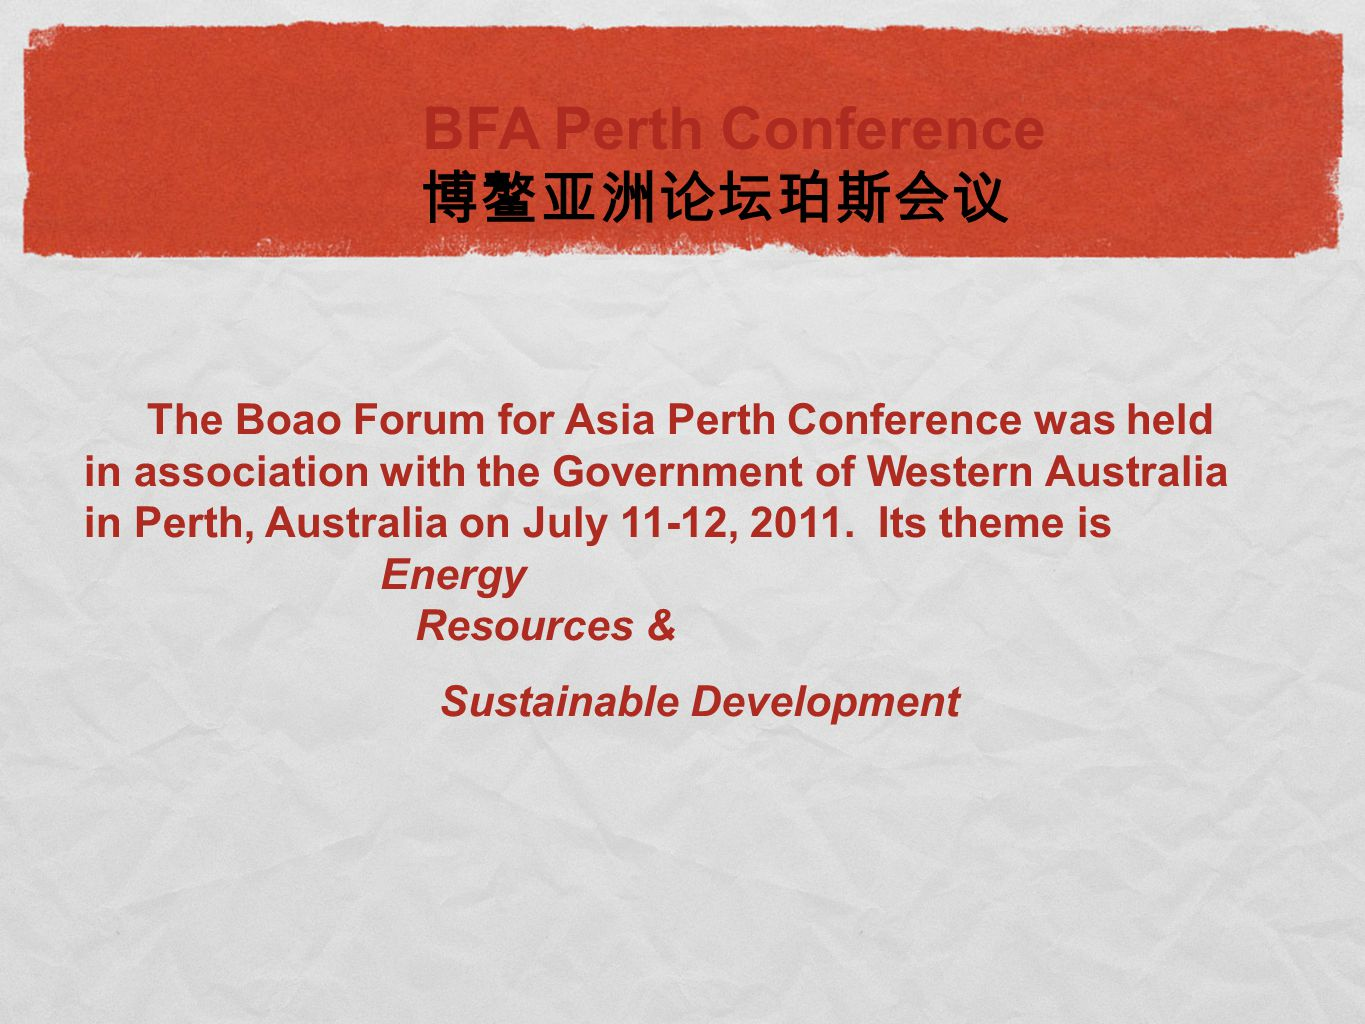 The Boao Forum for Asia Perth Conference was held in association with the Government of Western Australia in Perth, Australia on July 11-12, 2011.